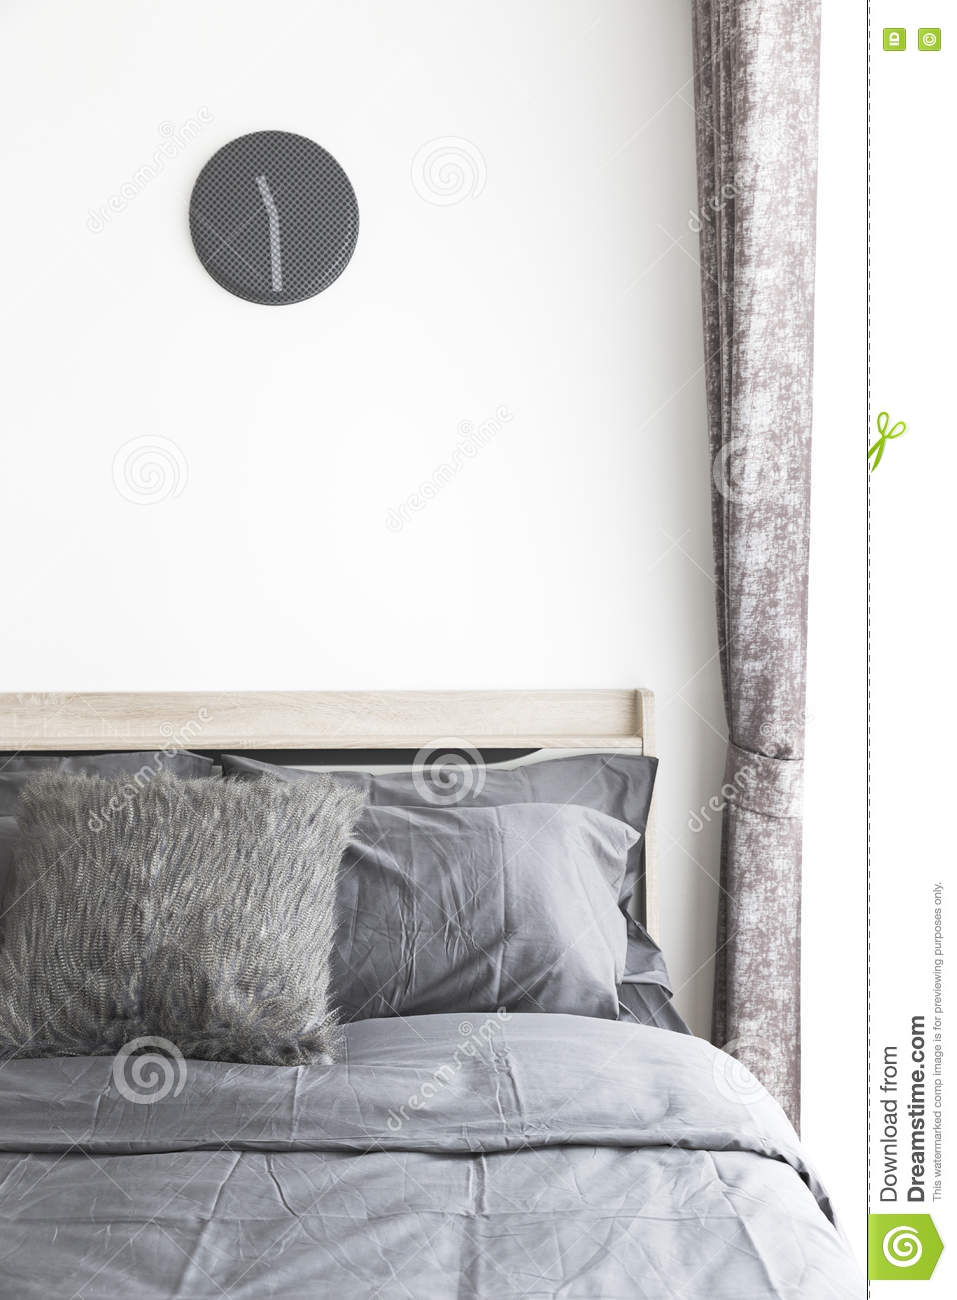 Grey pillows on bed